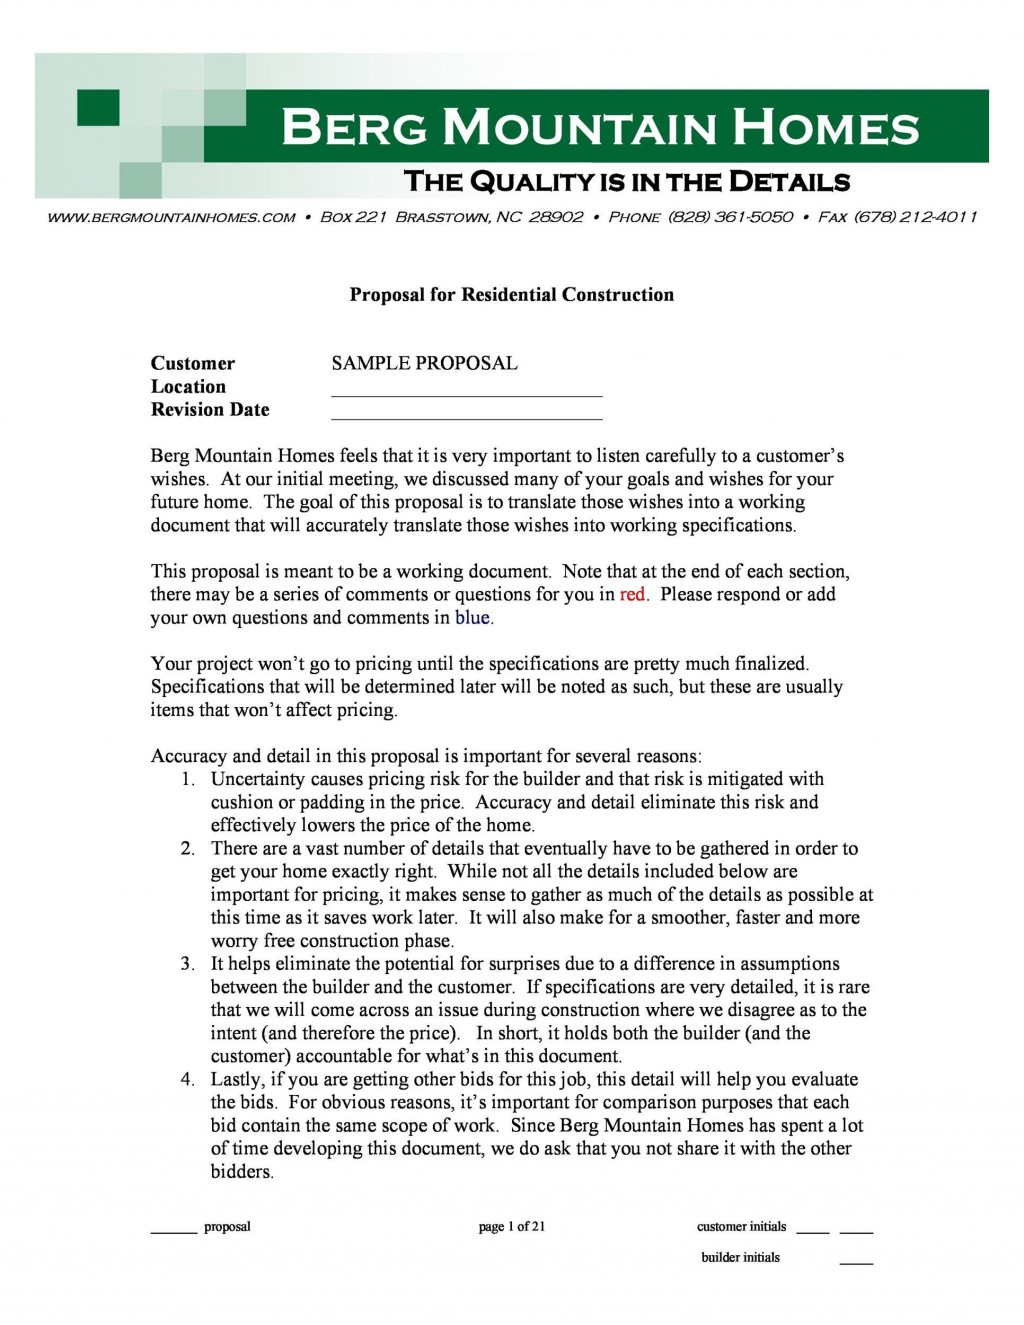 005 Exceptional Contractor Proposal Template Pdf Highest Clarity  Construction Bid Upwork Sample FreeLarge